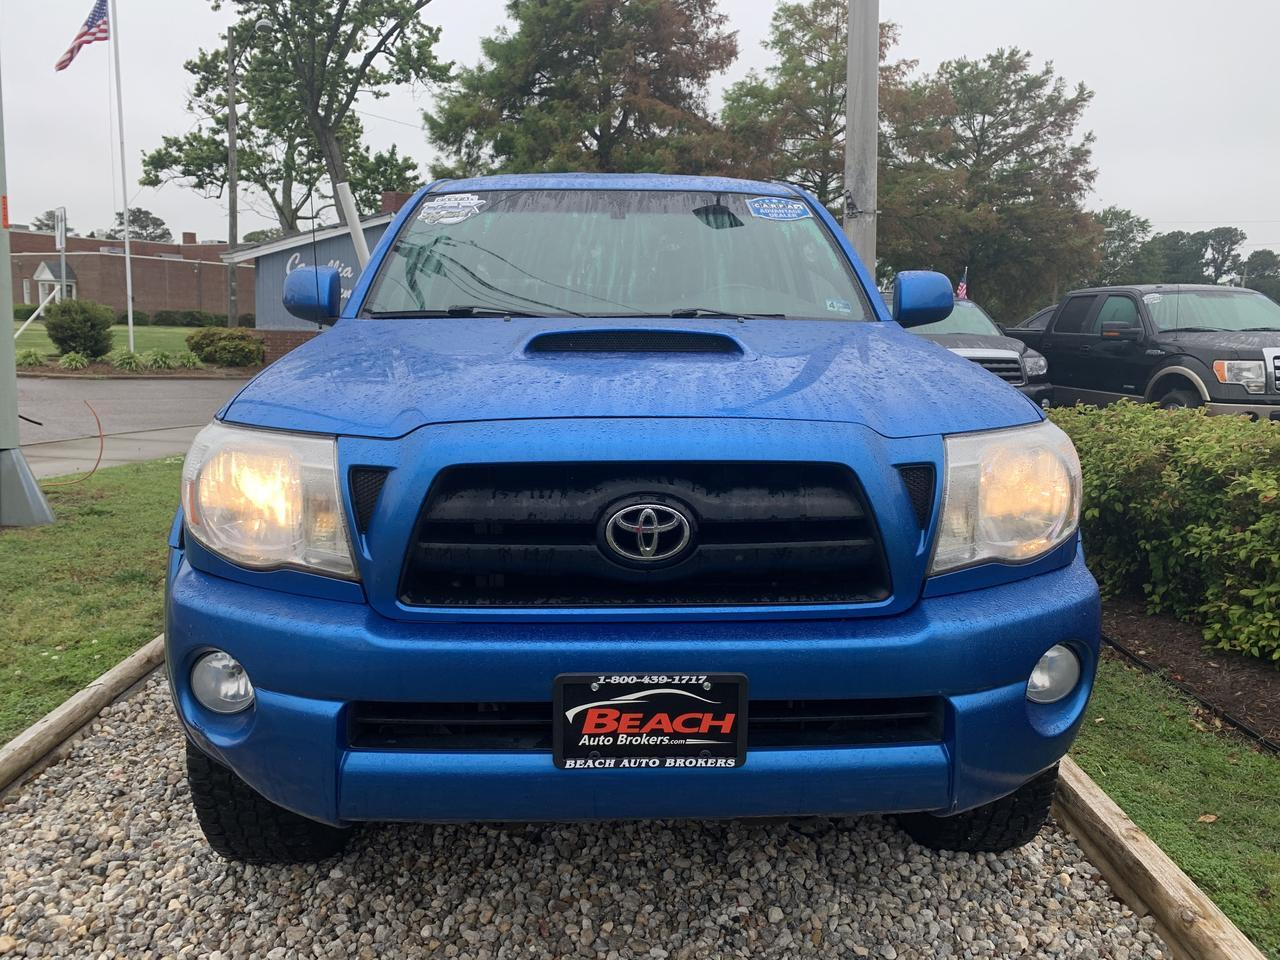 2006 TOYOTA TACOMA TRD SPORT DOUBLE CAB 4X4, WARRANTY, TOW PKG, BED LINER, SIRIUS RADIO, A/C, CLEAN CARFAX! Norfolk VA